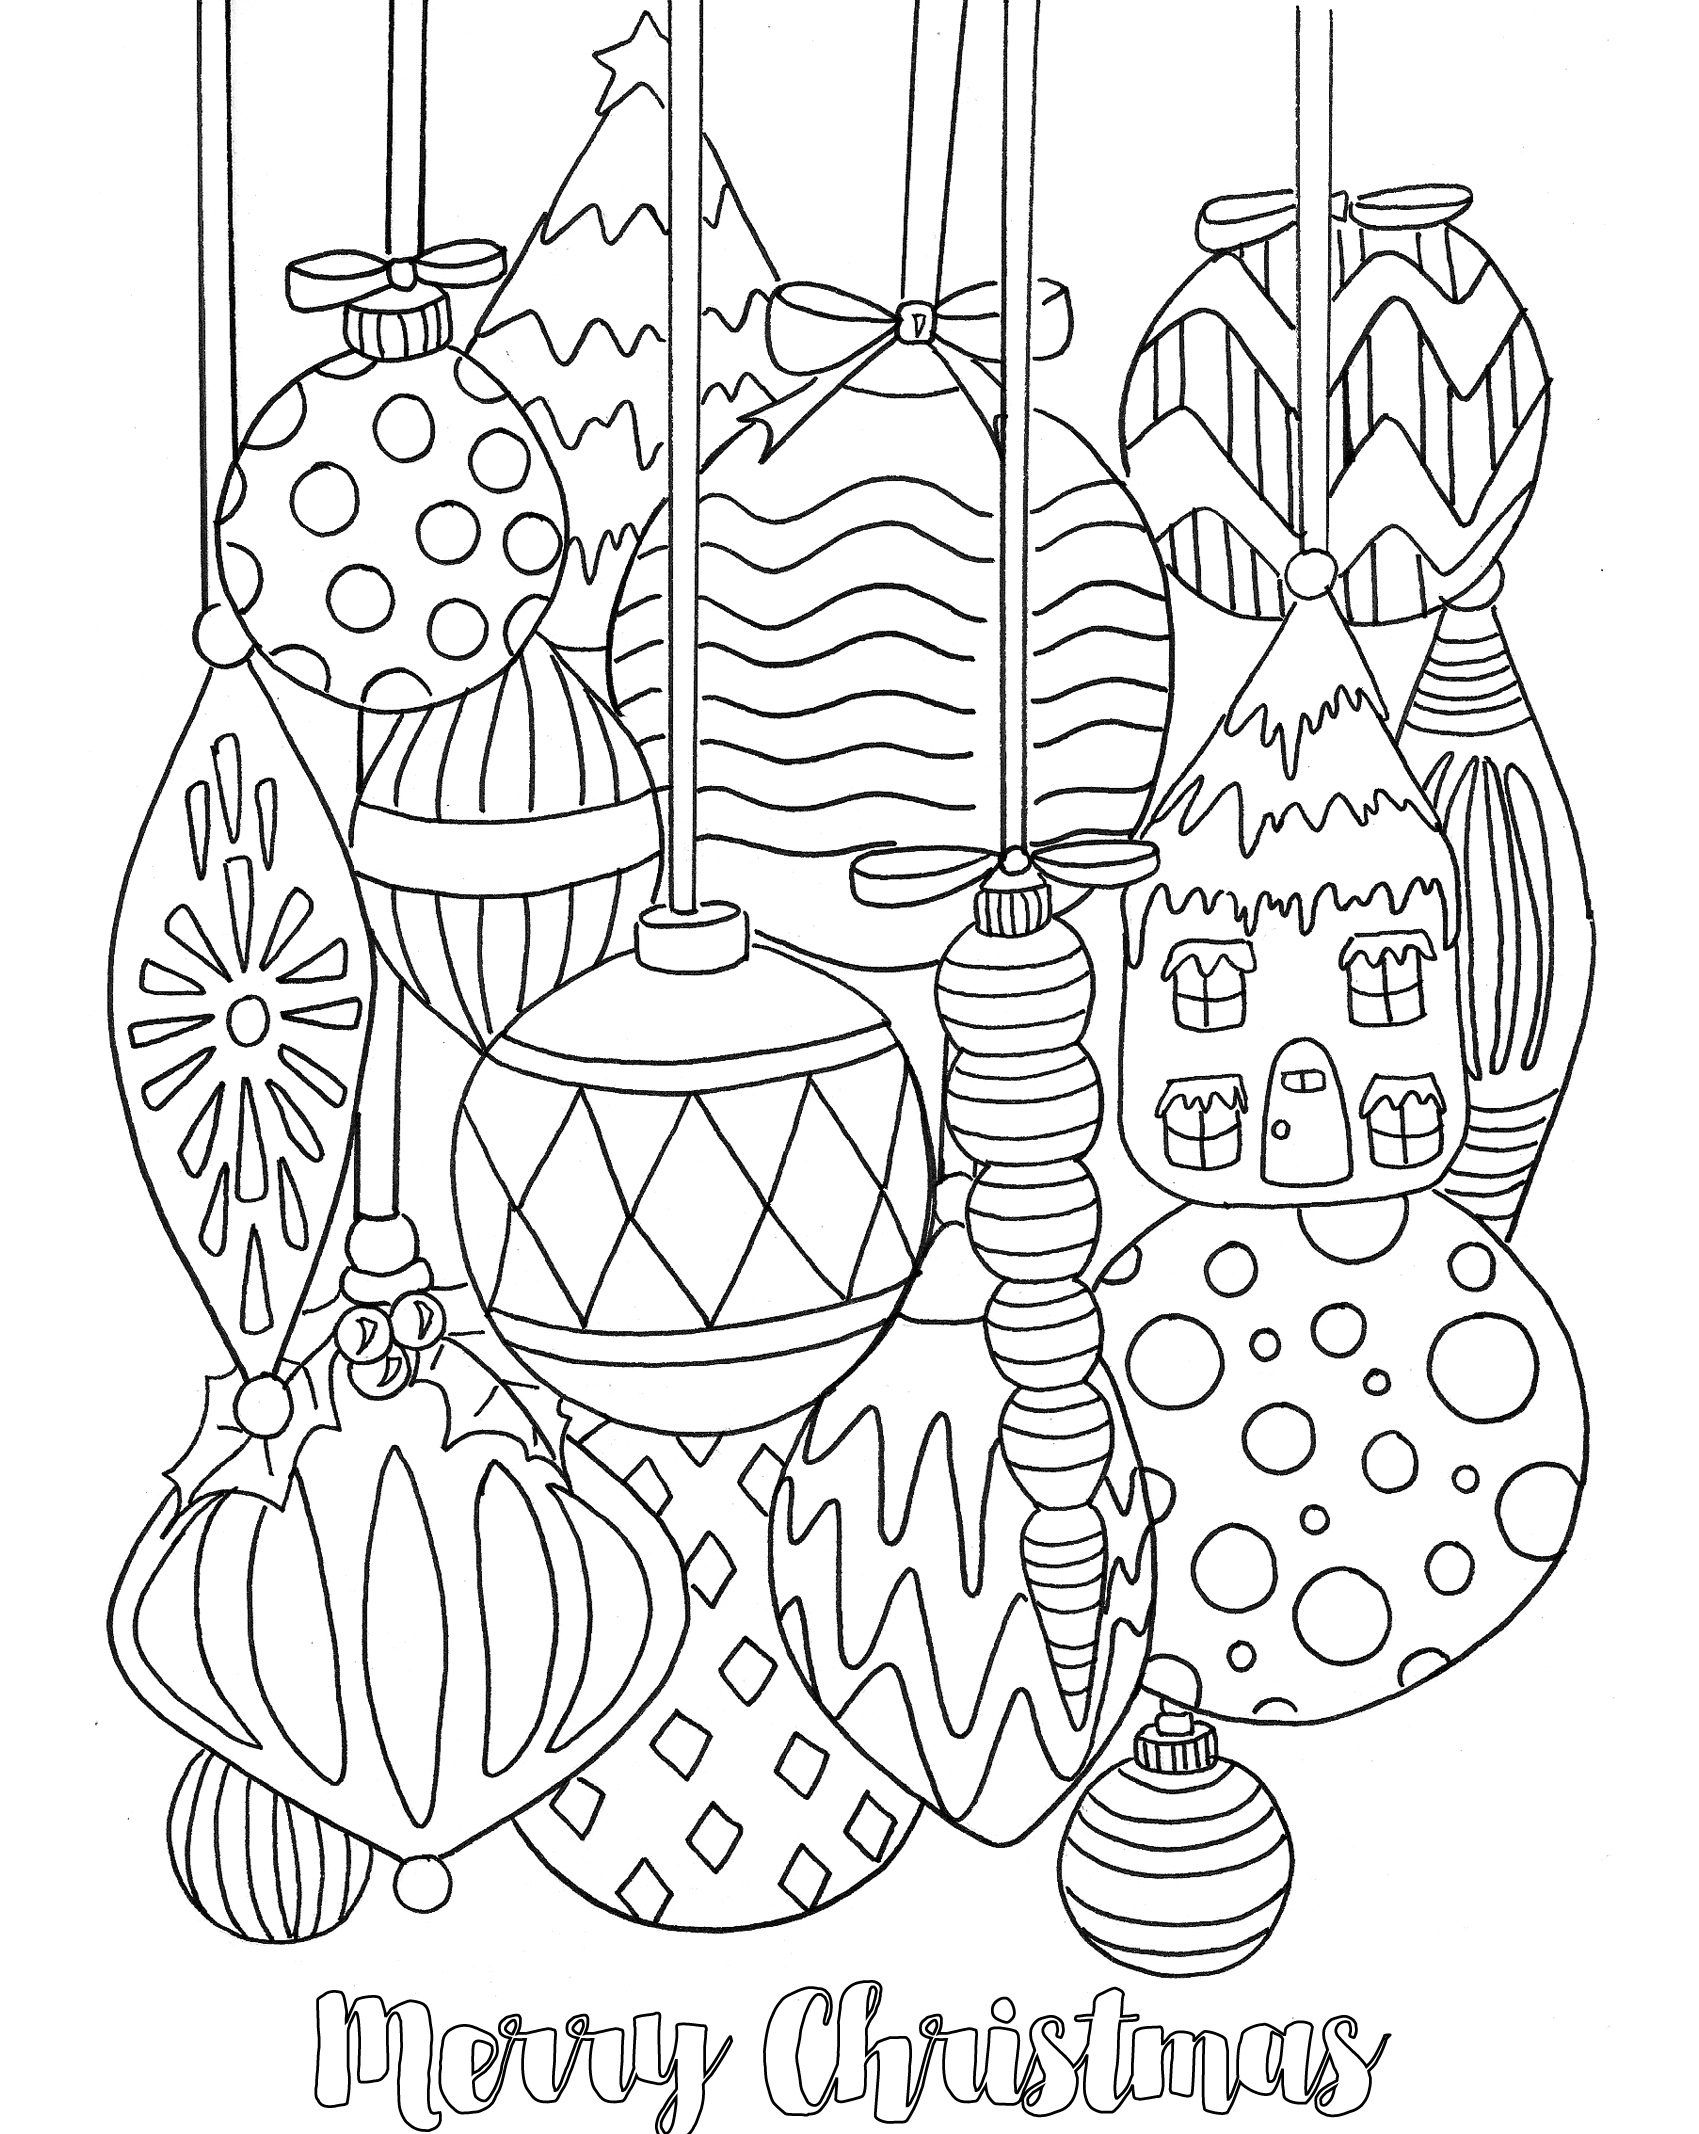 Christmas Coloring Pages Only Coloring Pages Printable Christmas Coloring Pages Free Christmas Coloring Pages Christmas Coloring Pages